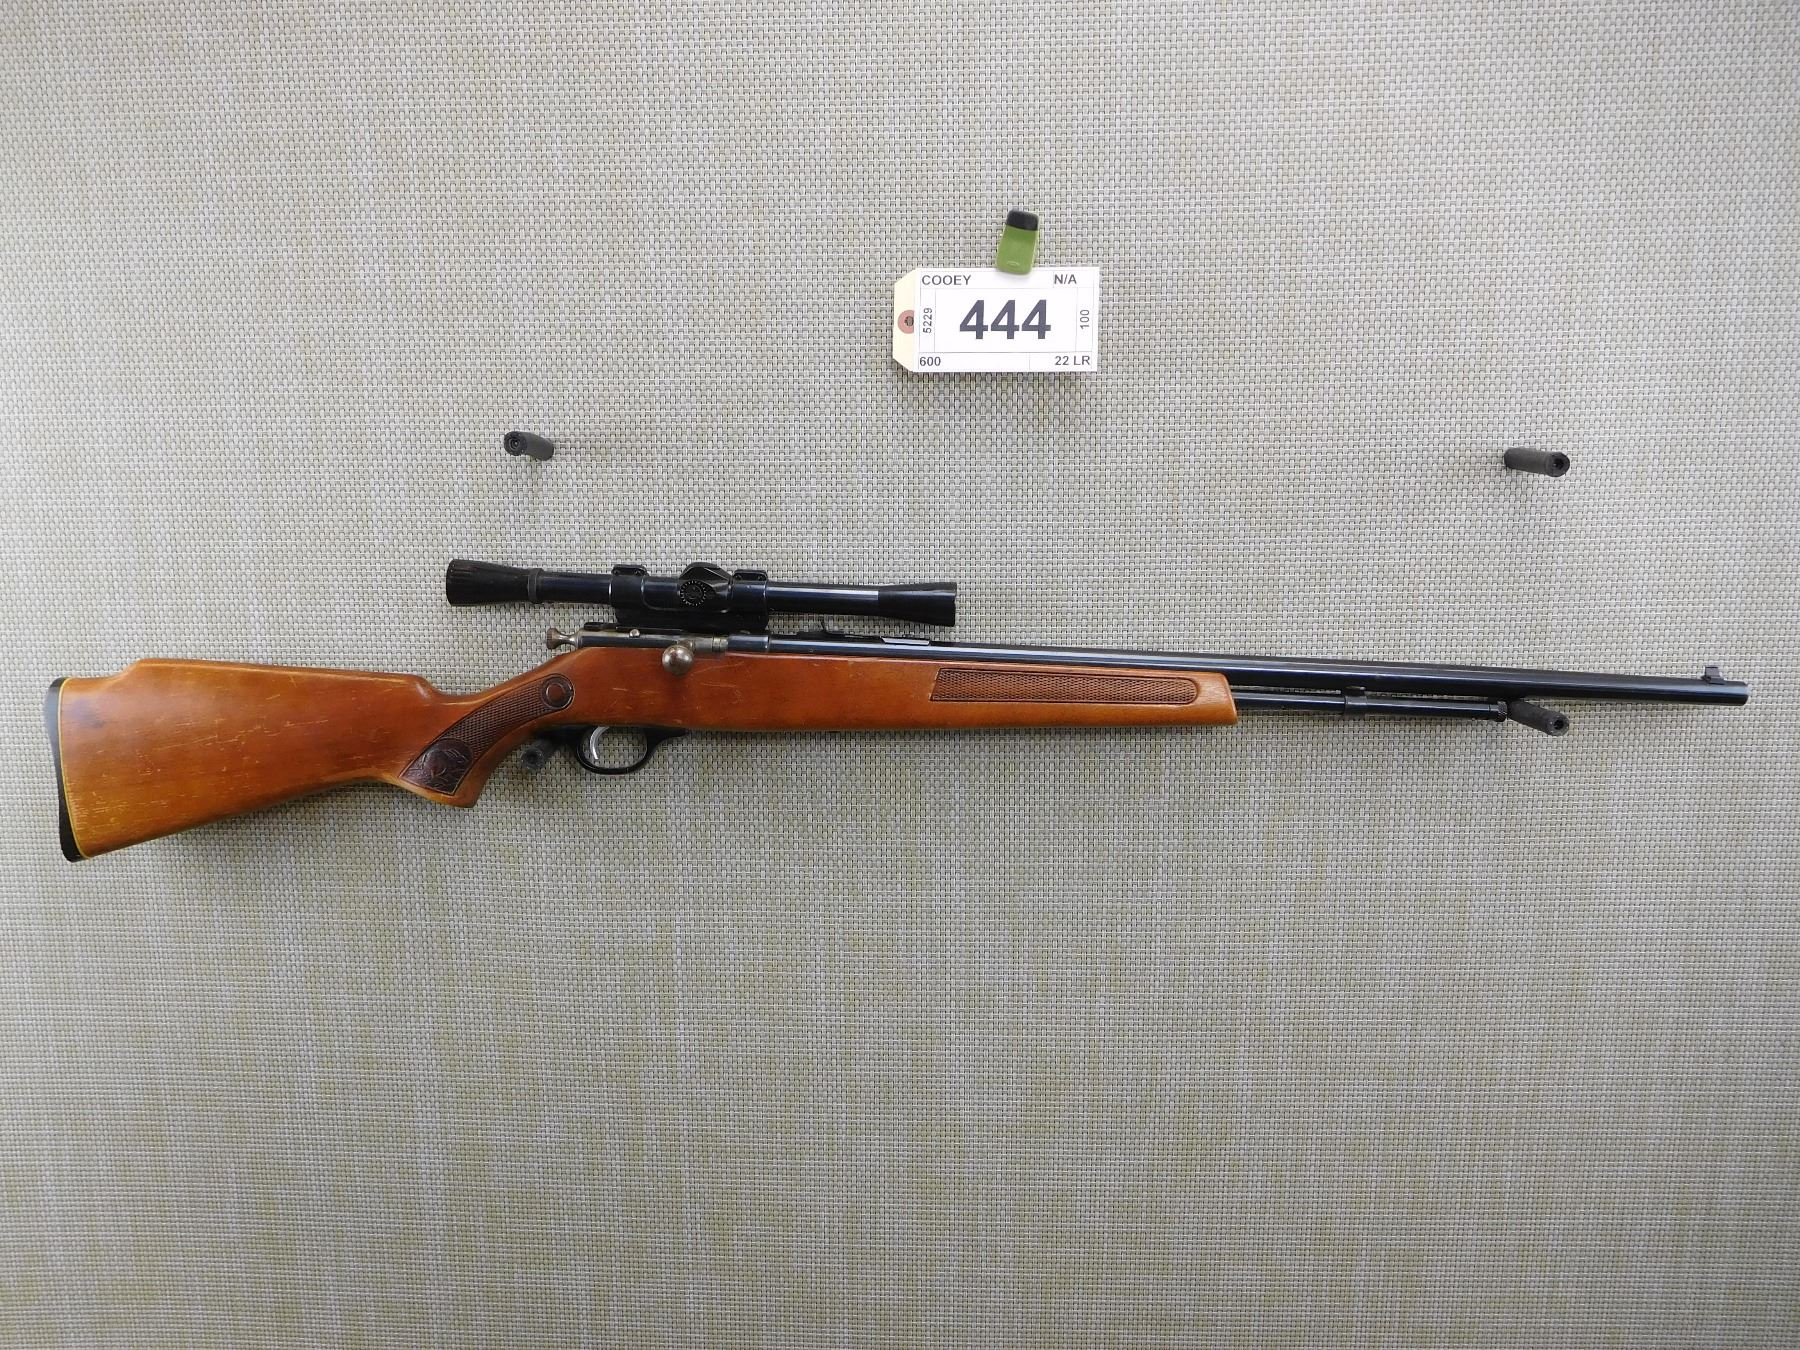 winchester cooey model 600 manual expert user guide u2022 rh ndayo com cooey model 600 owners manual cooey model 600 owners manual